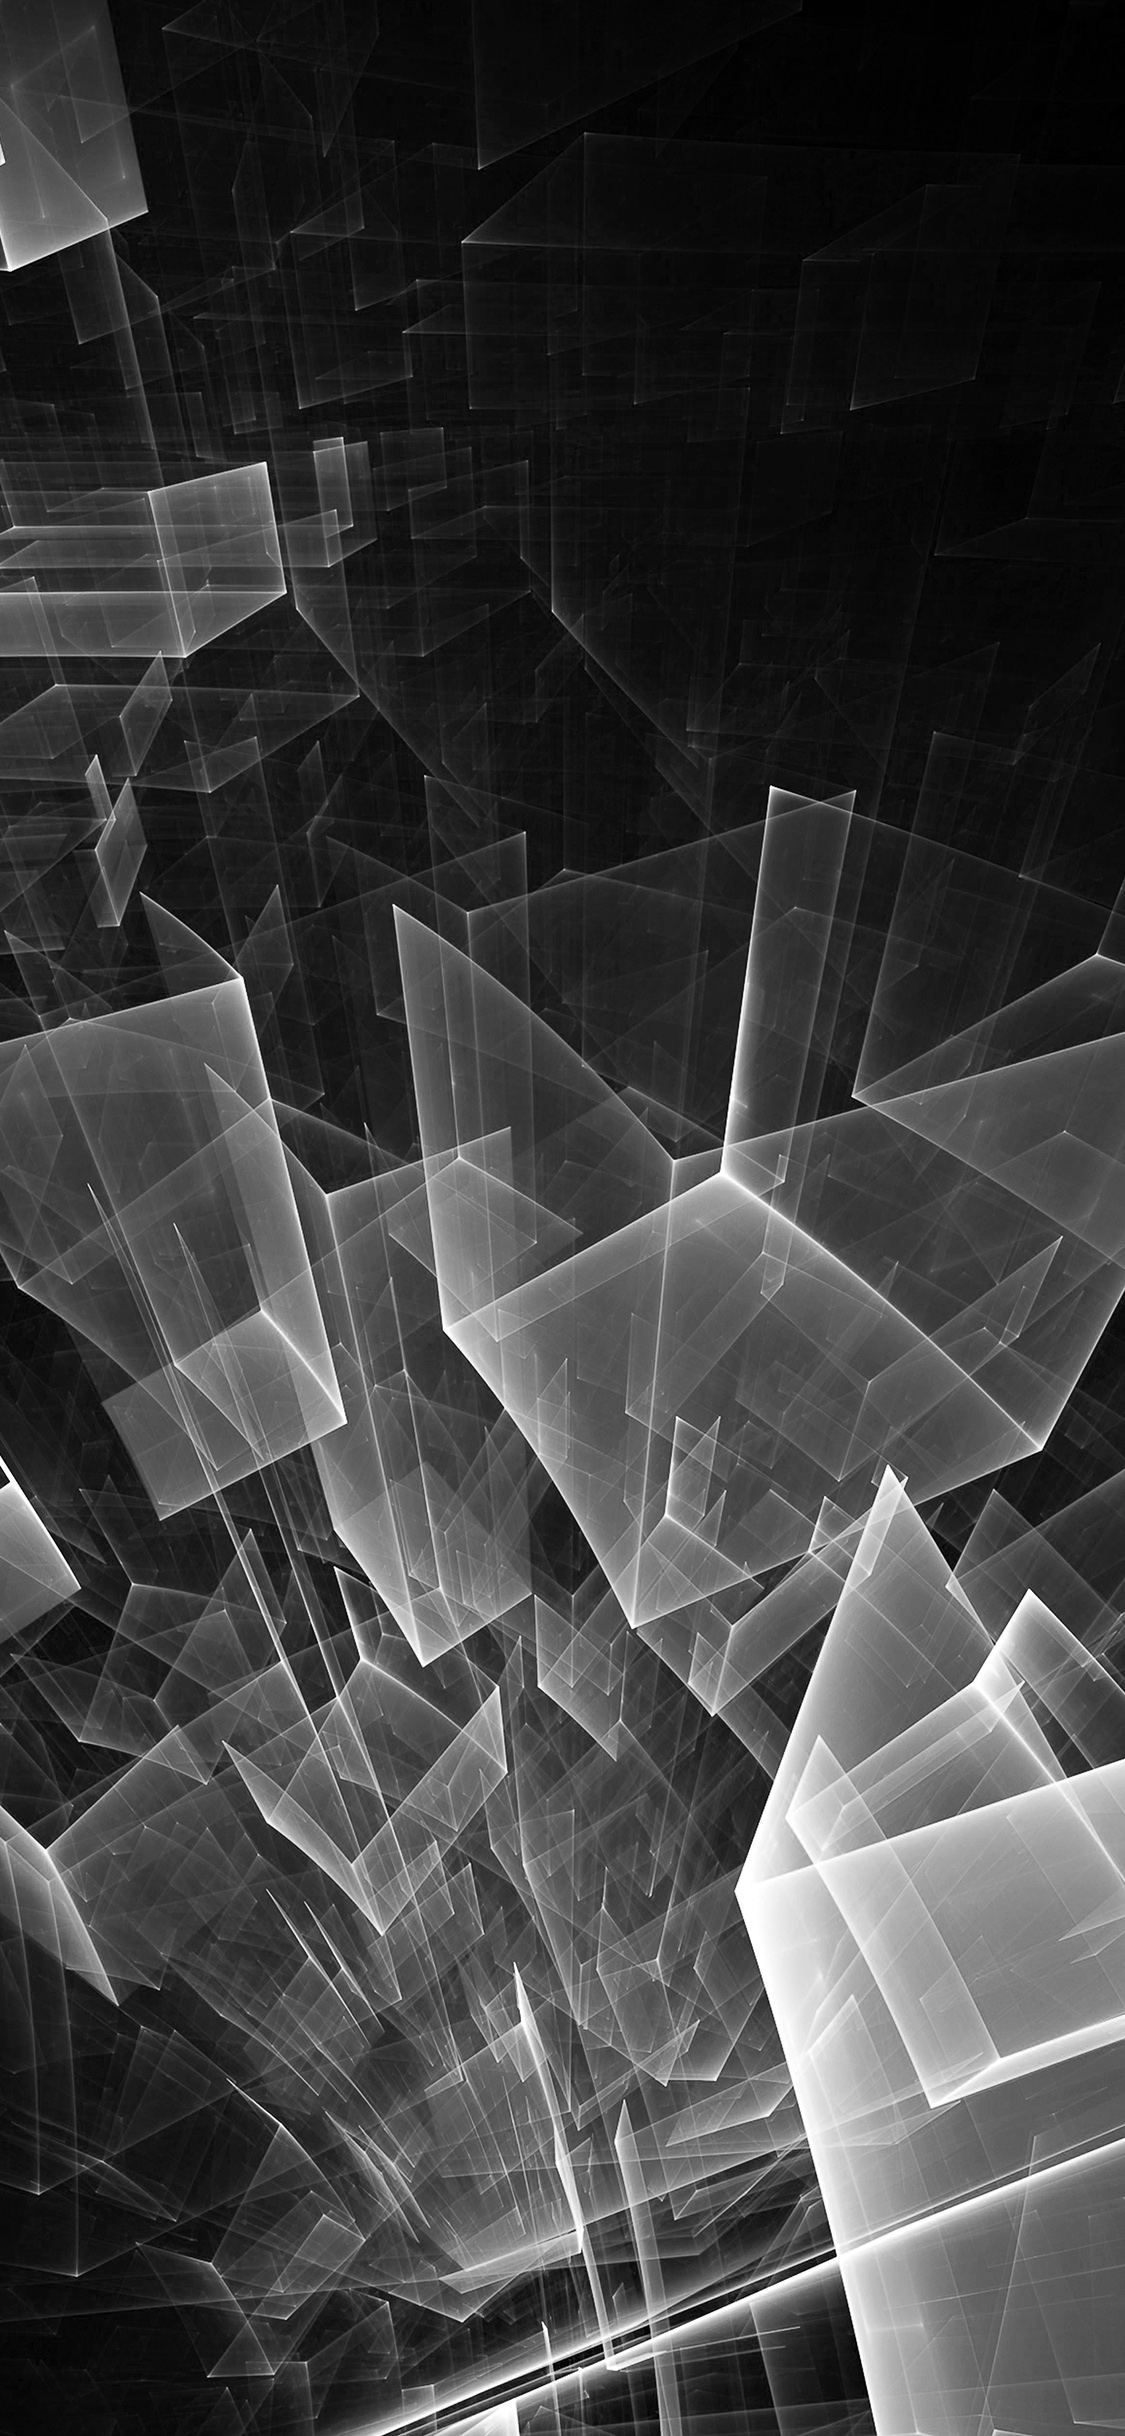 Iphonexpapers Com Iphone X Wallpaper Vl90 Abstract Bw Dark Cube Pattern